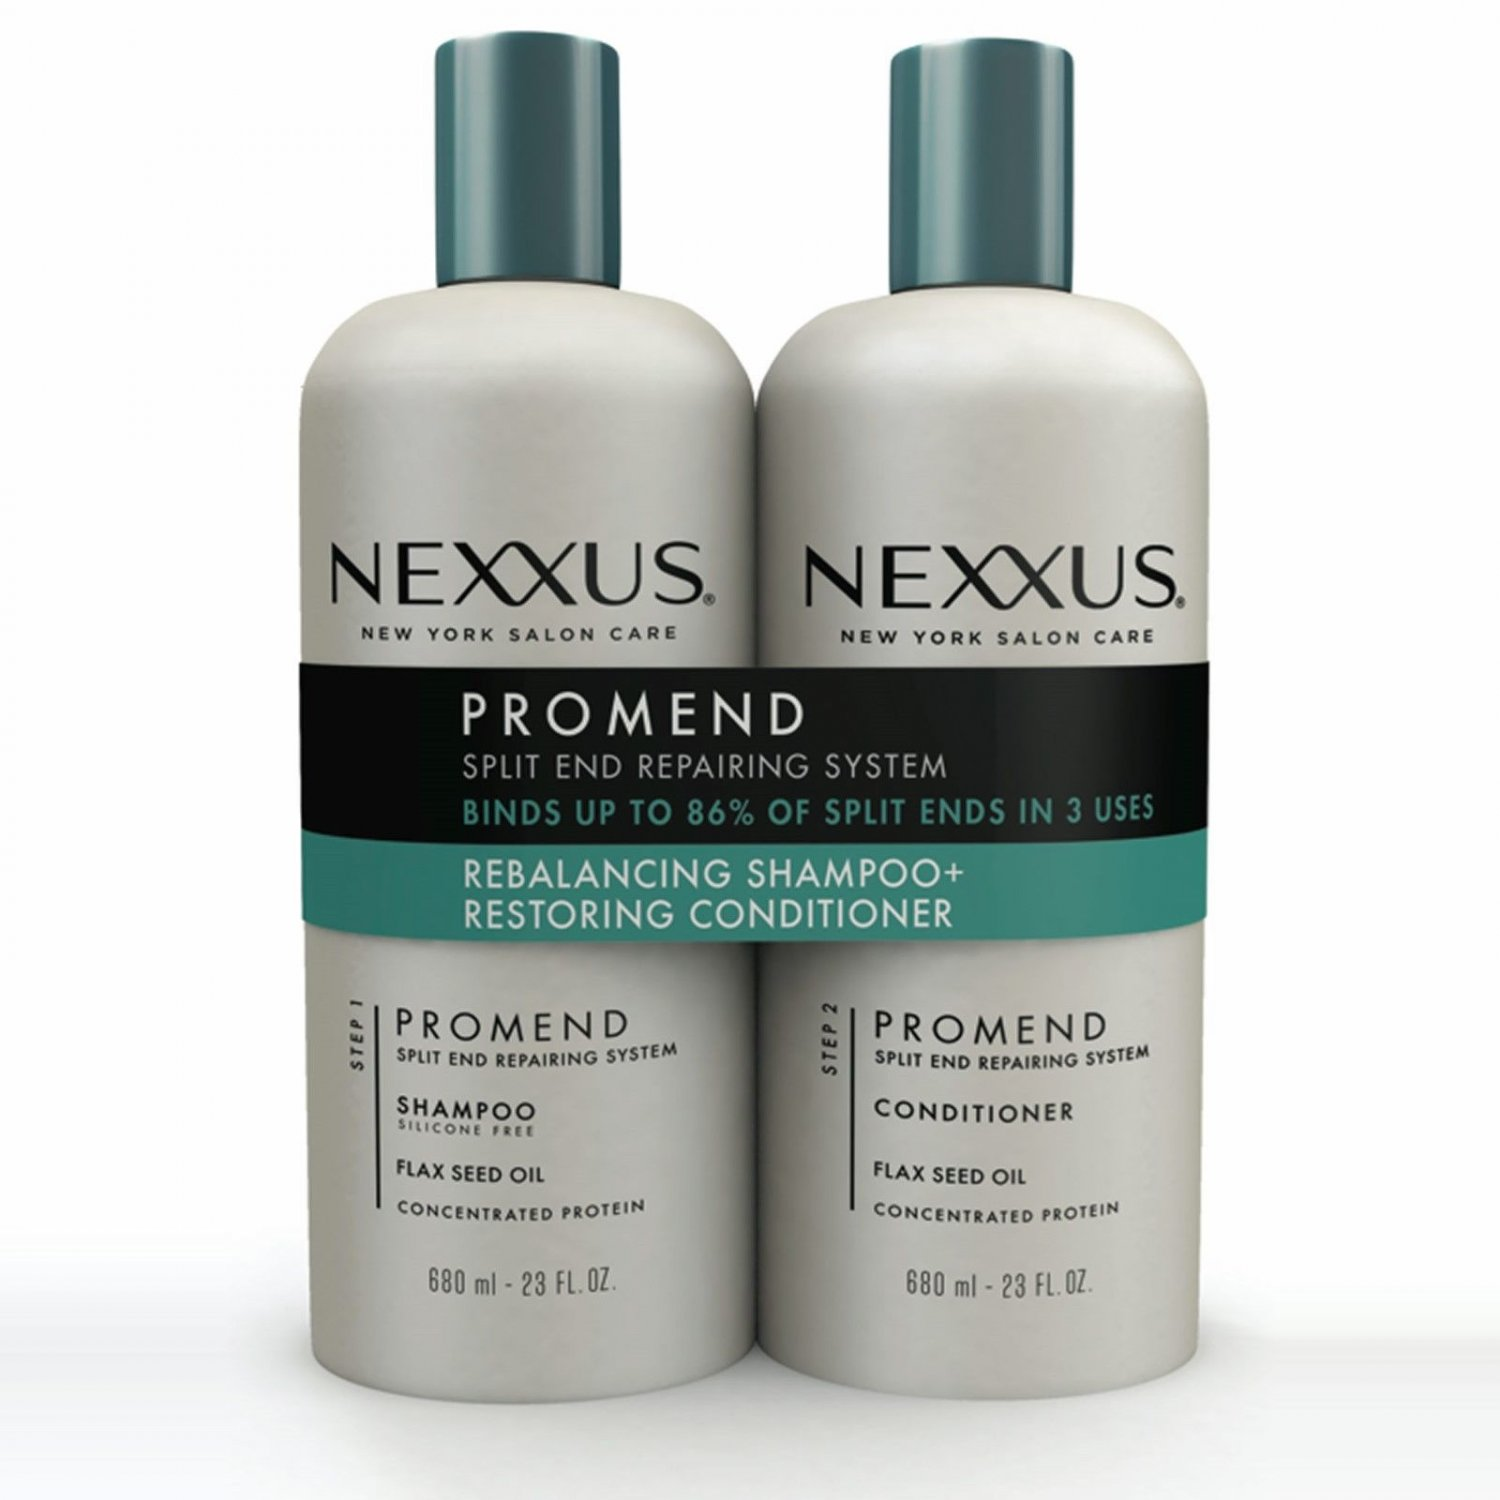 Nexxus Salon Hair Care Pro aily Shampoo and Conditioner